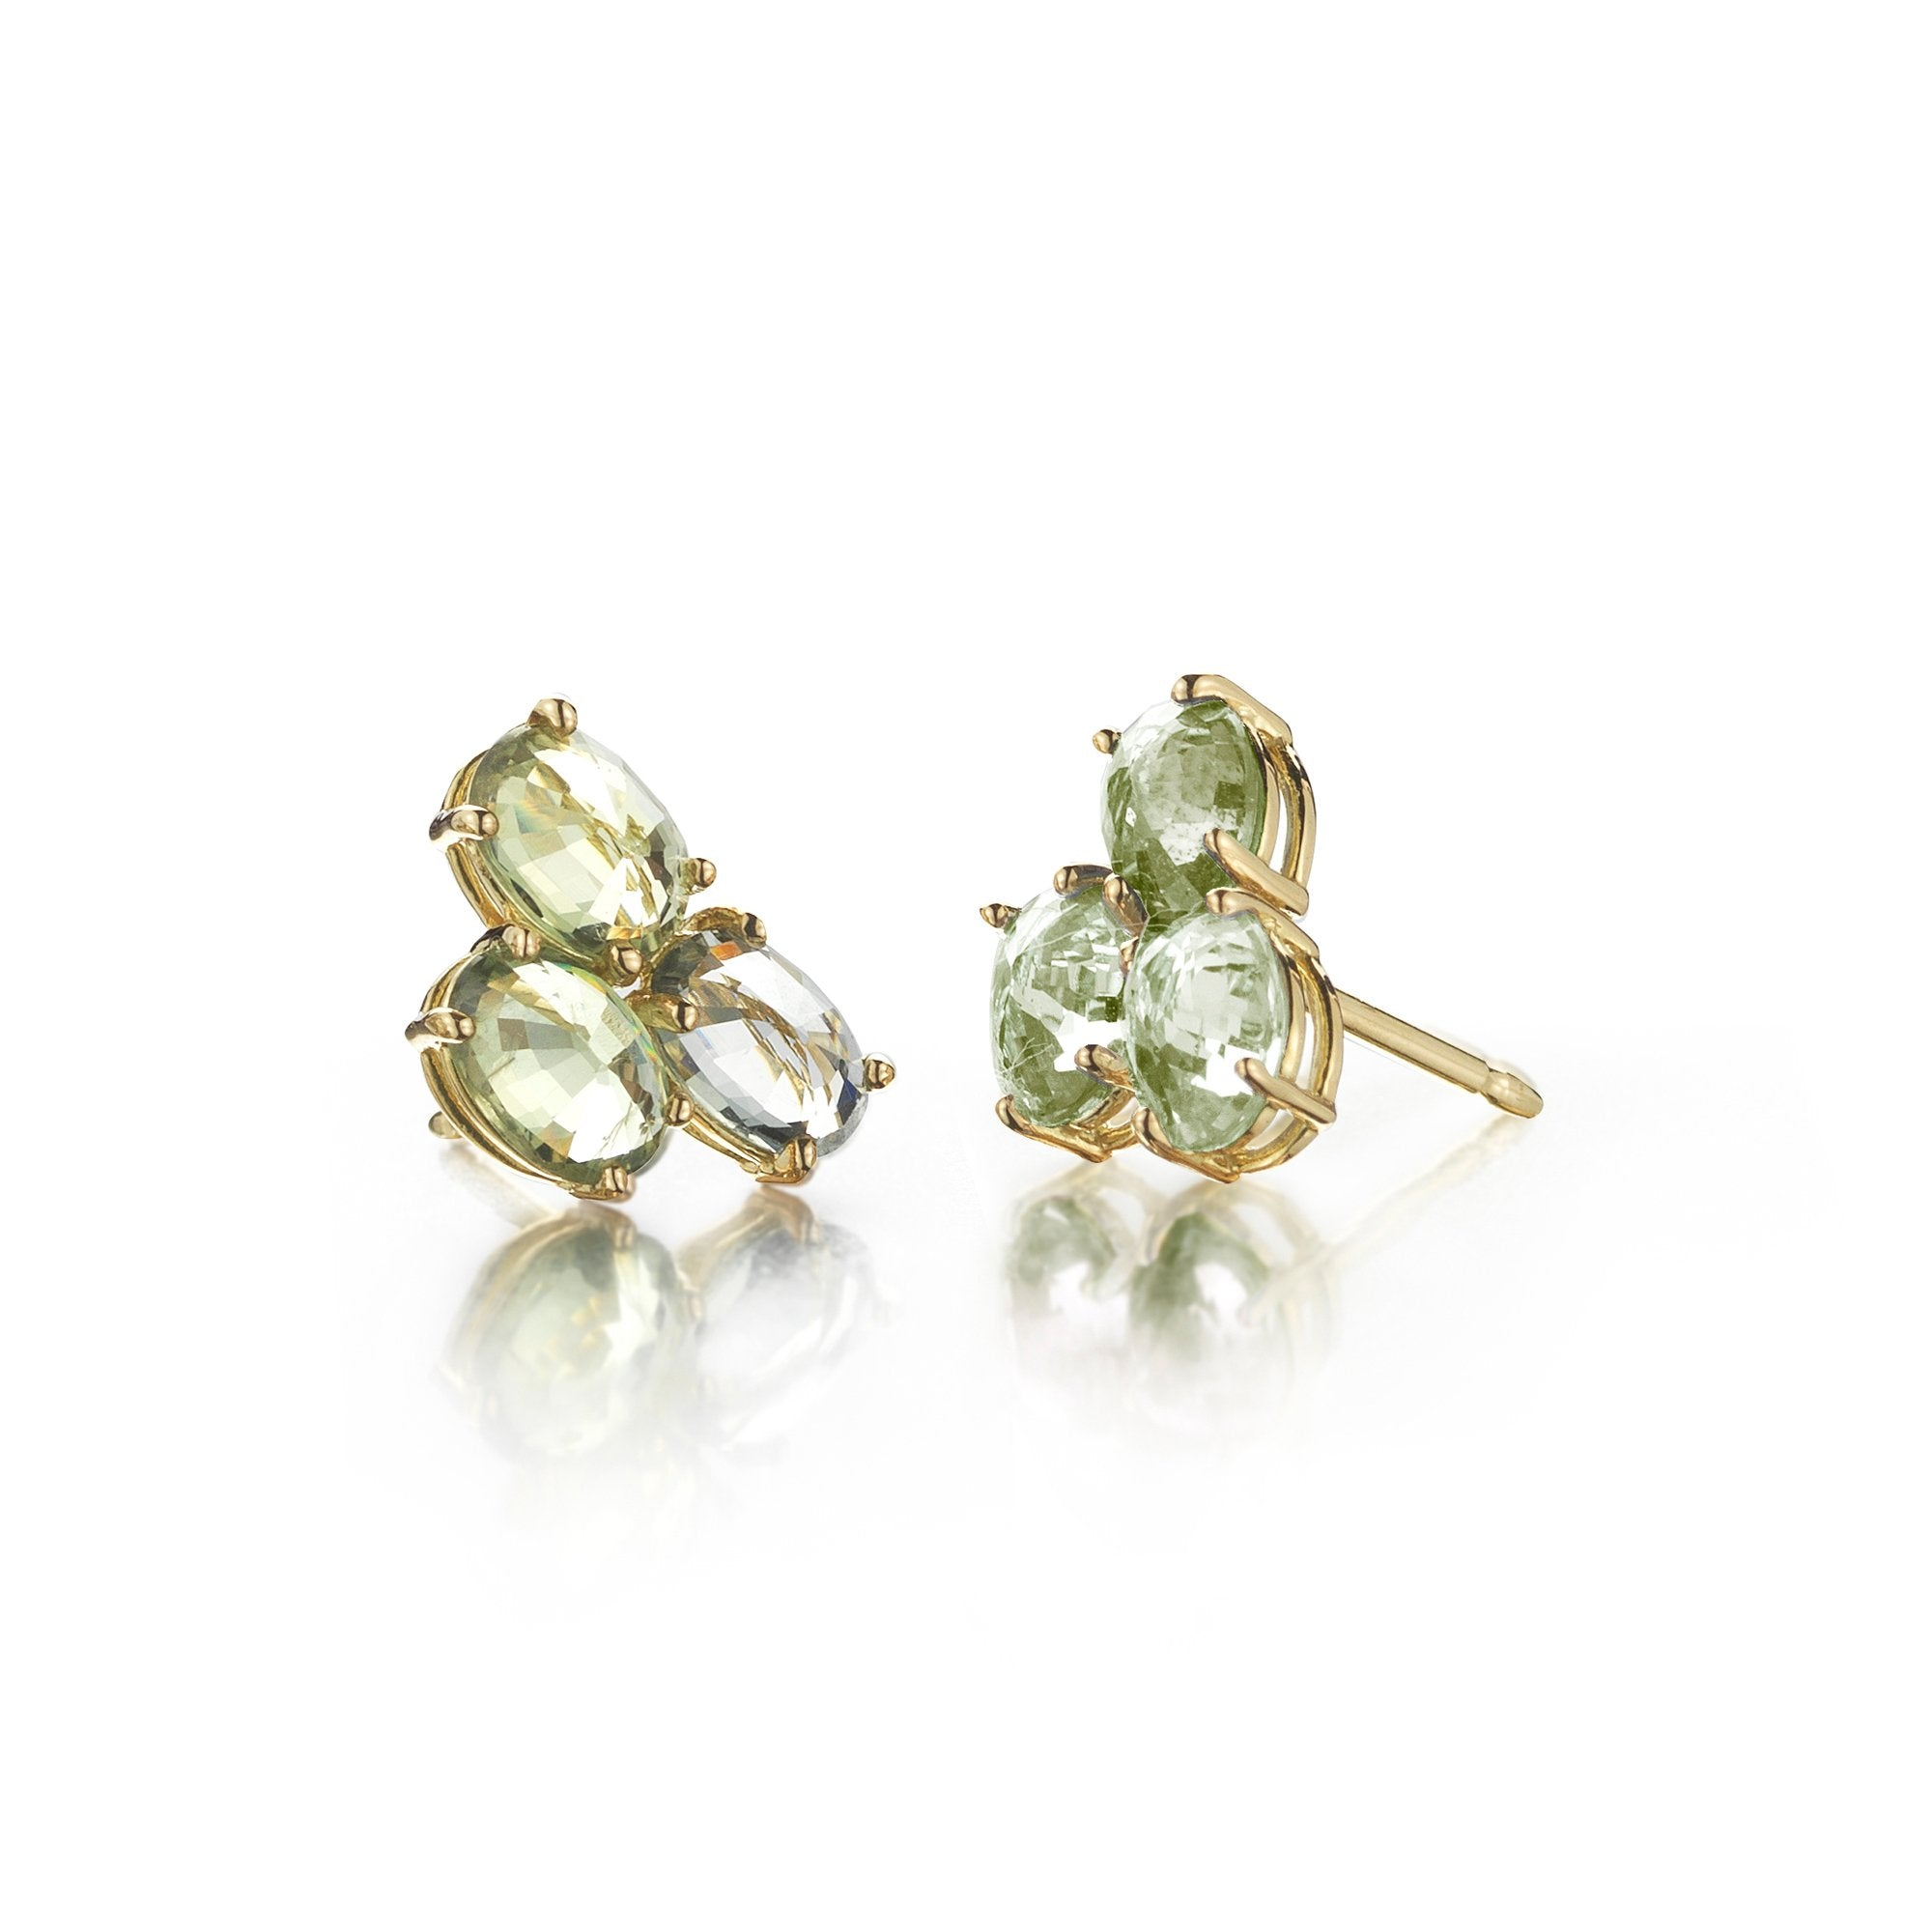 Green Sapphire 'Ombre' Trillion Stud Earrings - Paolo Costagli - 1